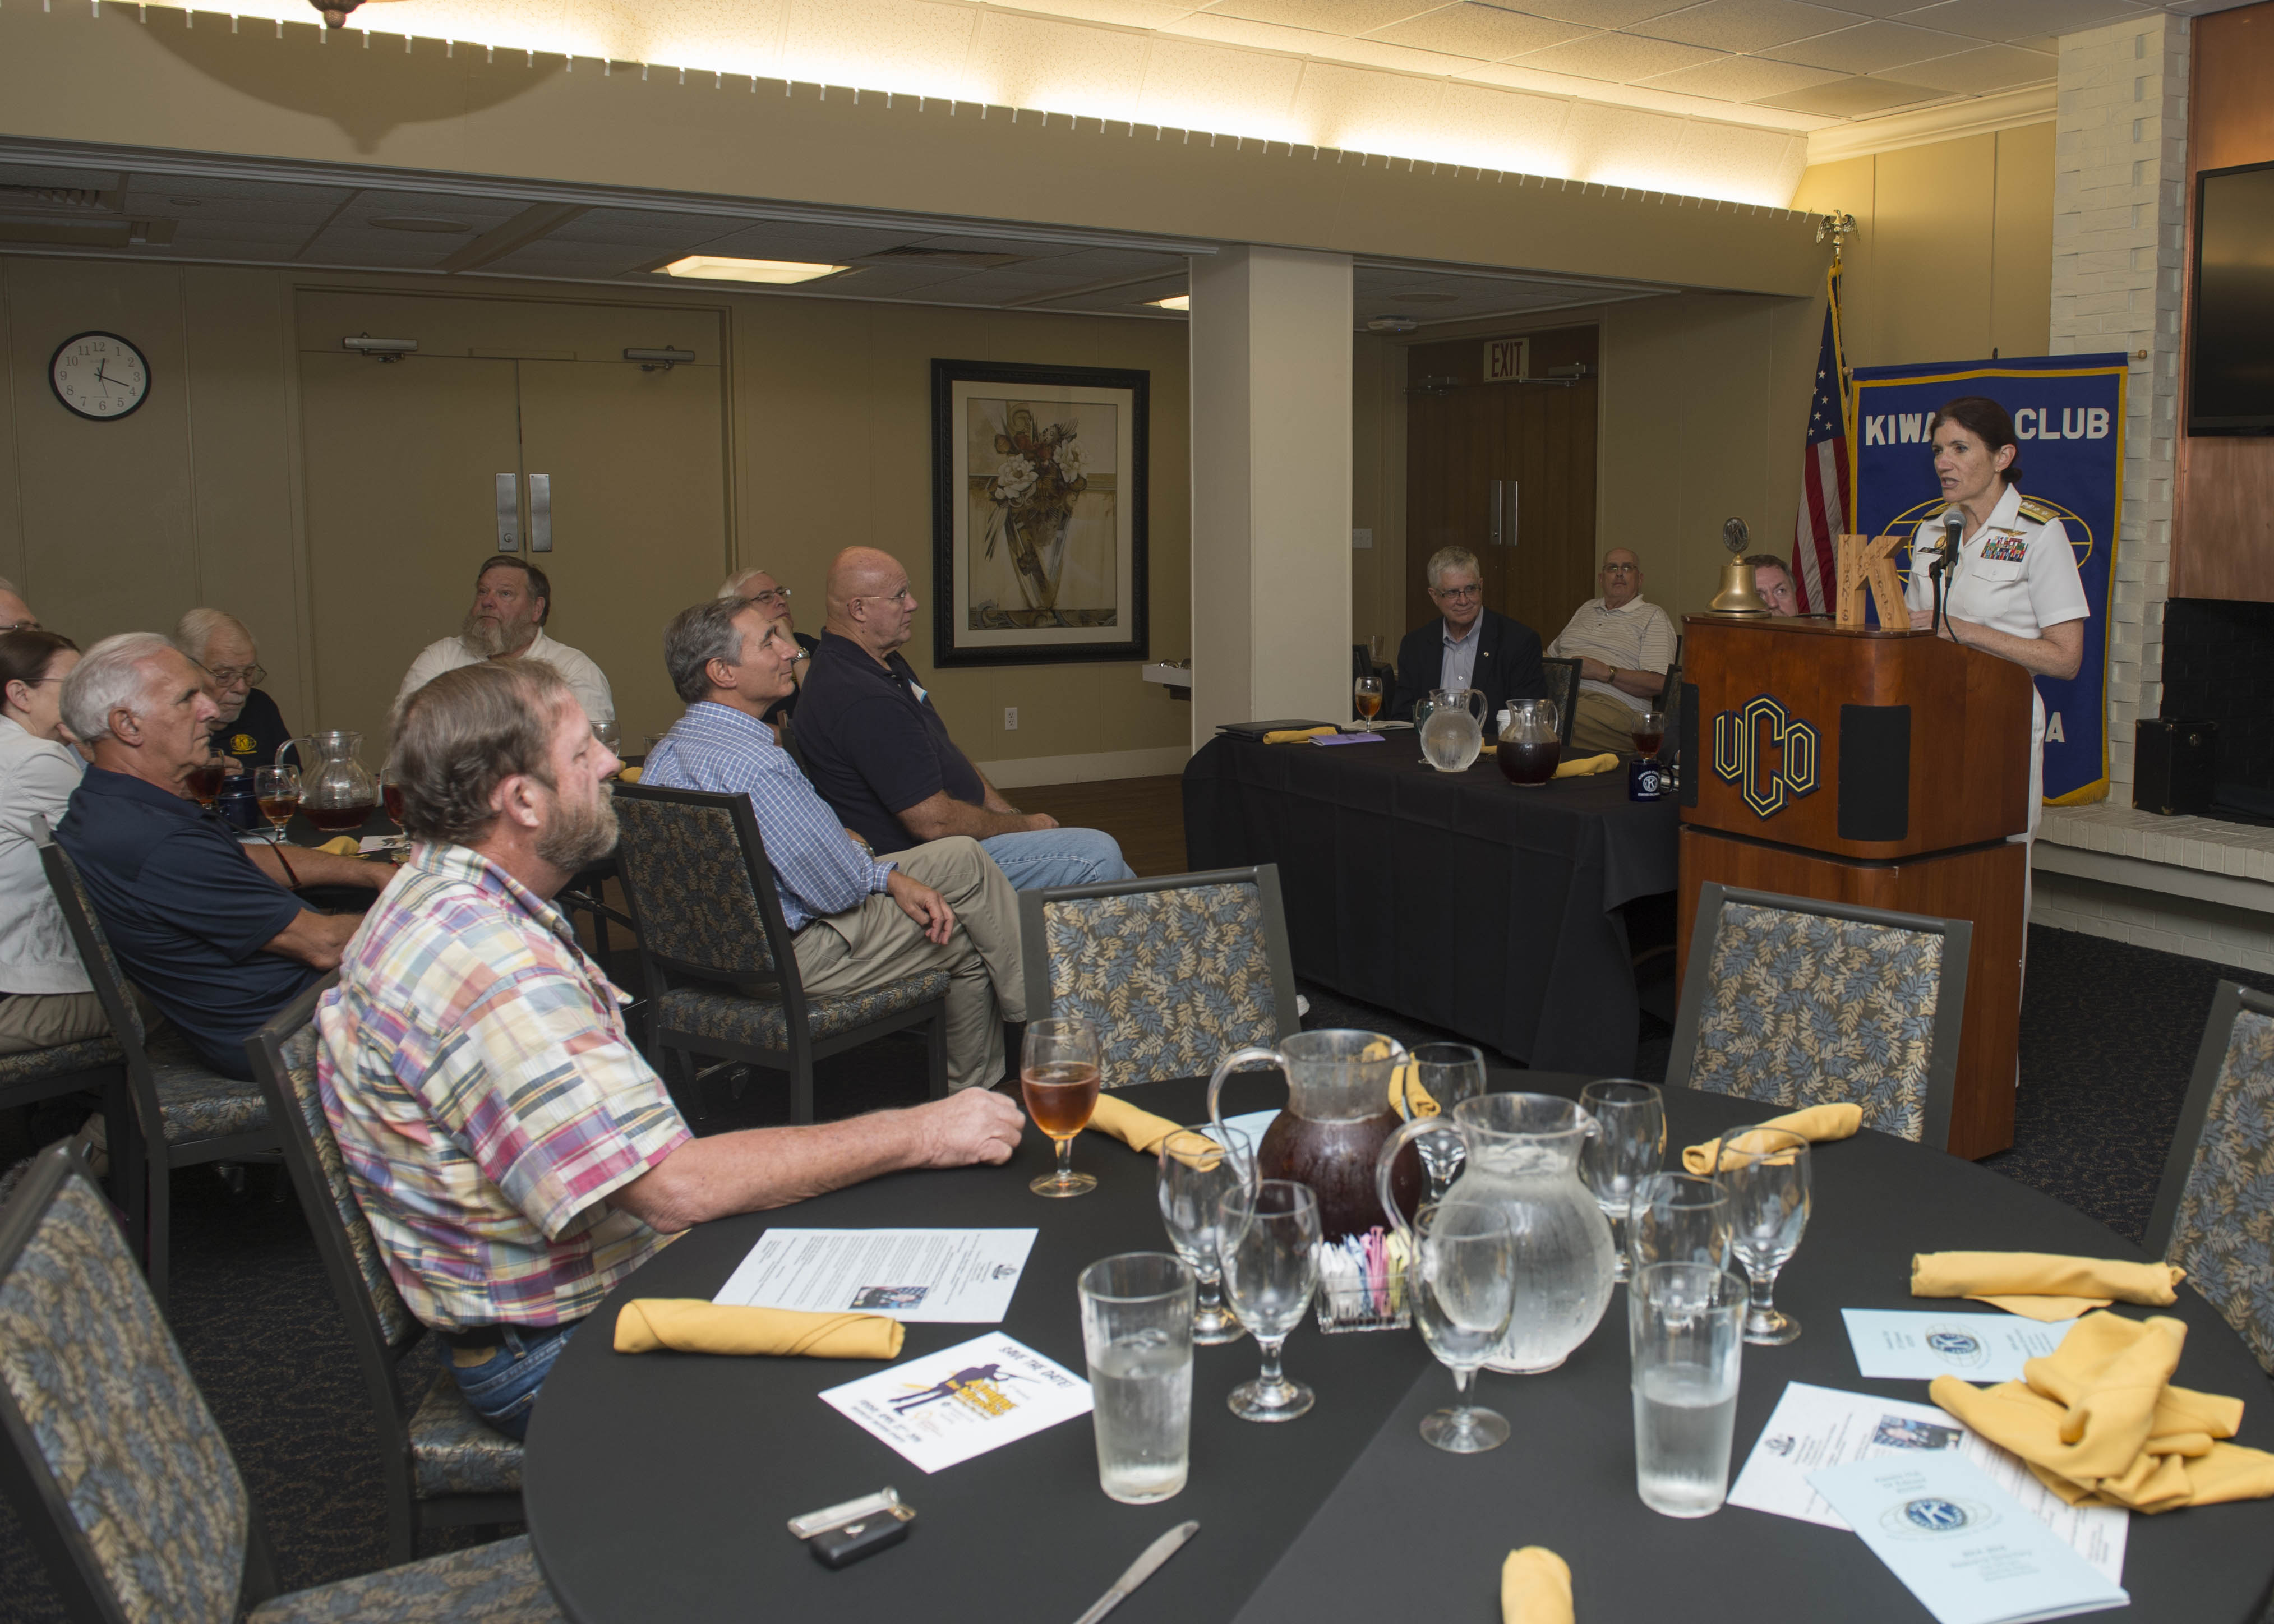 U.S. Navy: Rear Adm. Peg Klein, senior advisor to the Secretary of Defense for military professionalism, speaks with members of the Edmond Kiwanis Club. (U.S. Navy photo by Mass Communication Specialist 3rd Class James Vazquez/Released)